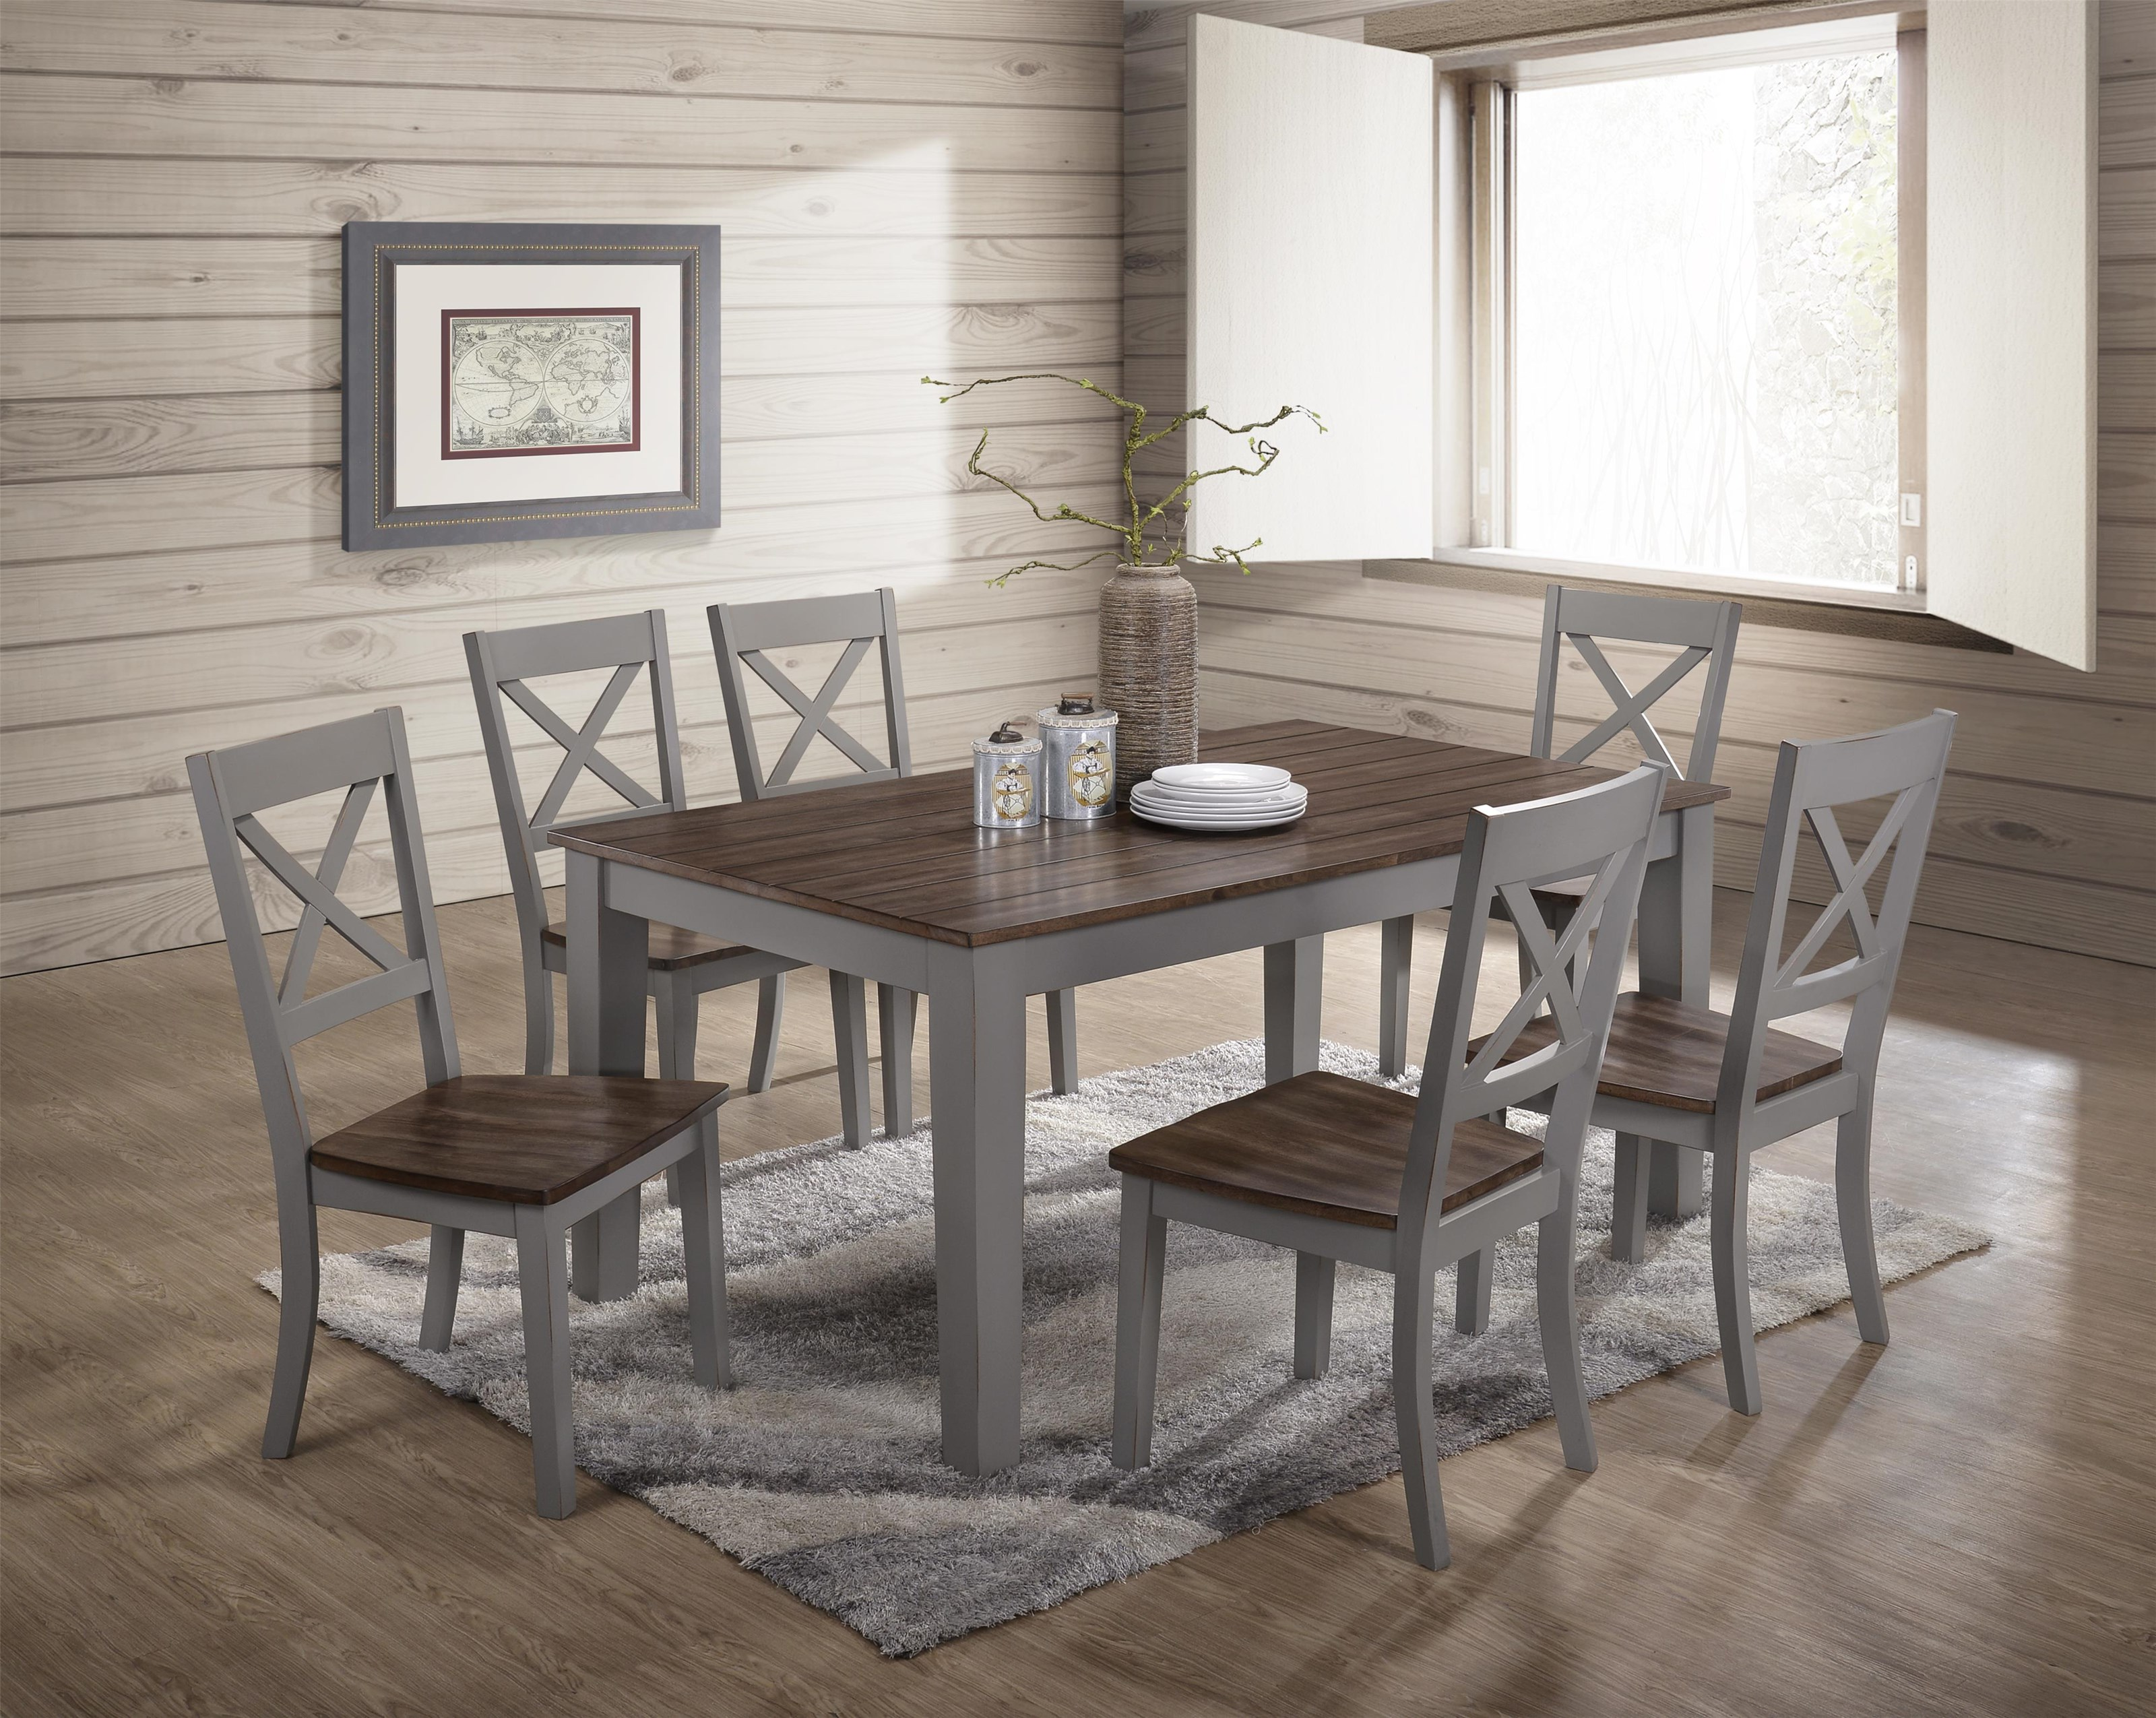 5059 7 Piece Table and Chair Set by United Furniture Industries at Value City Furniture